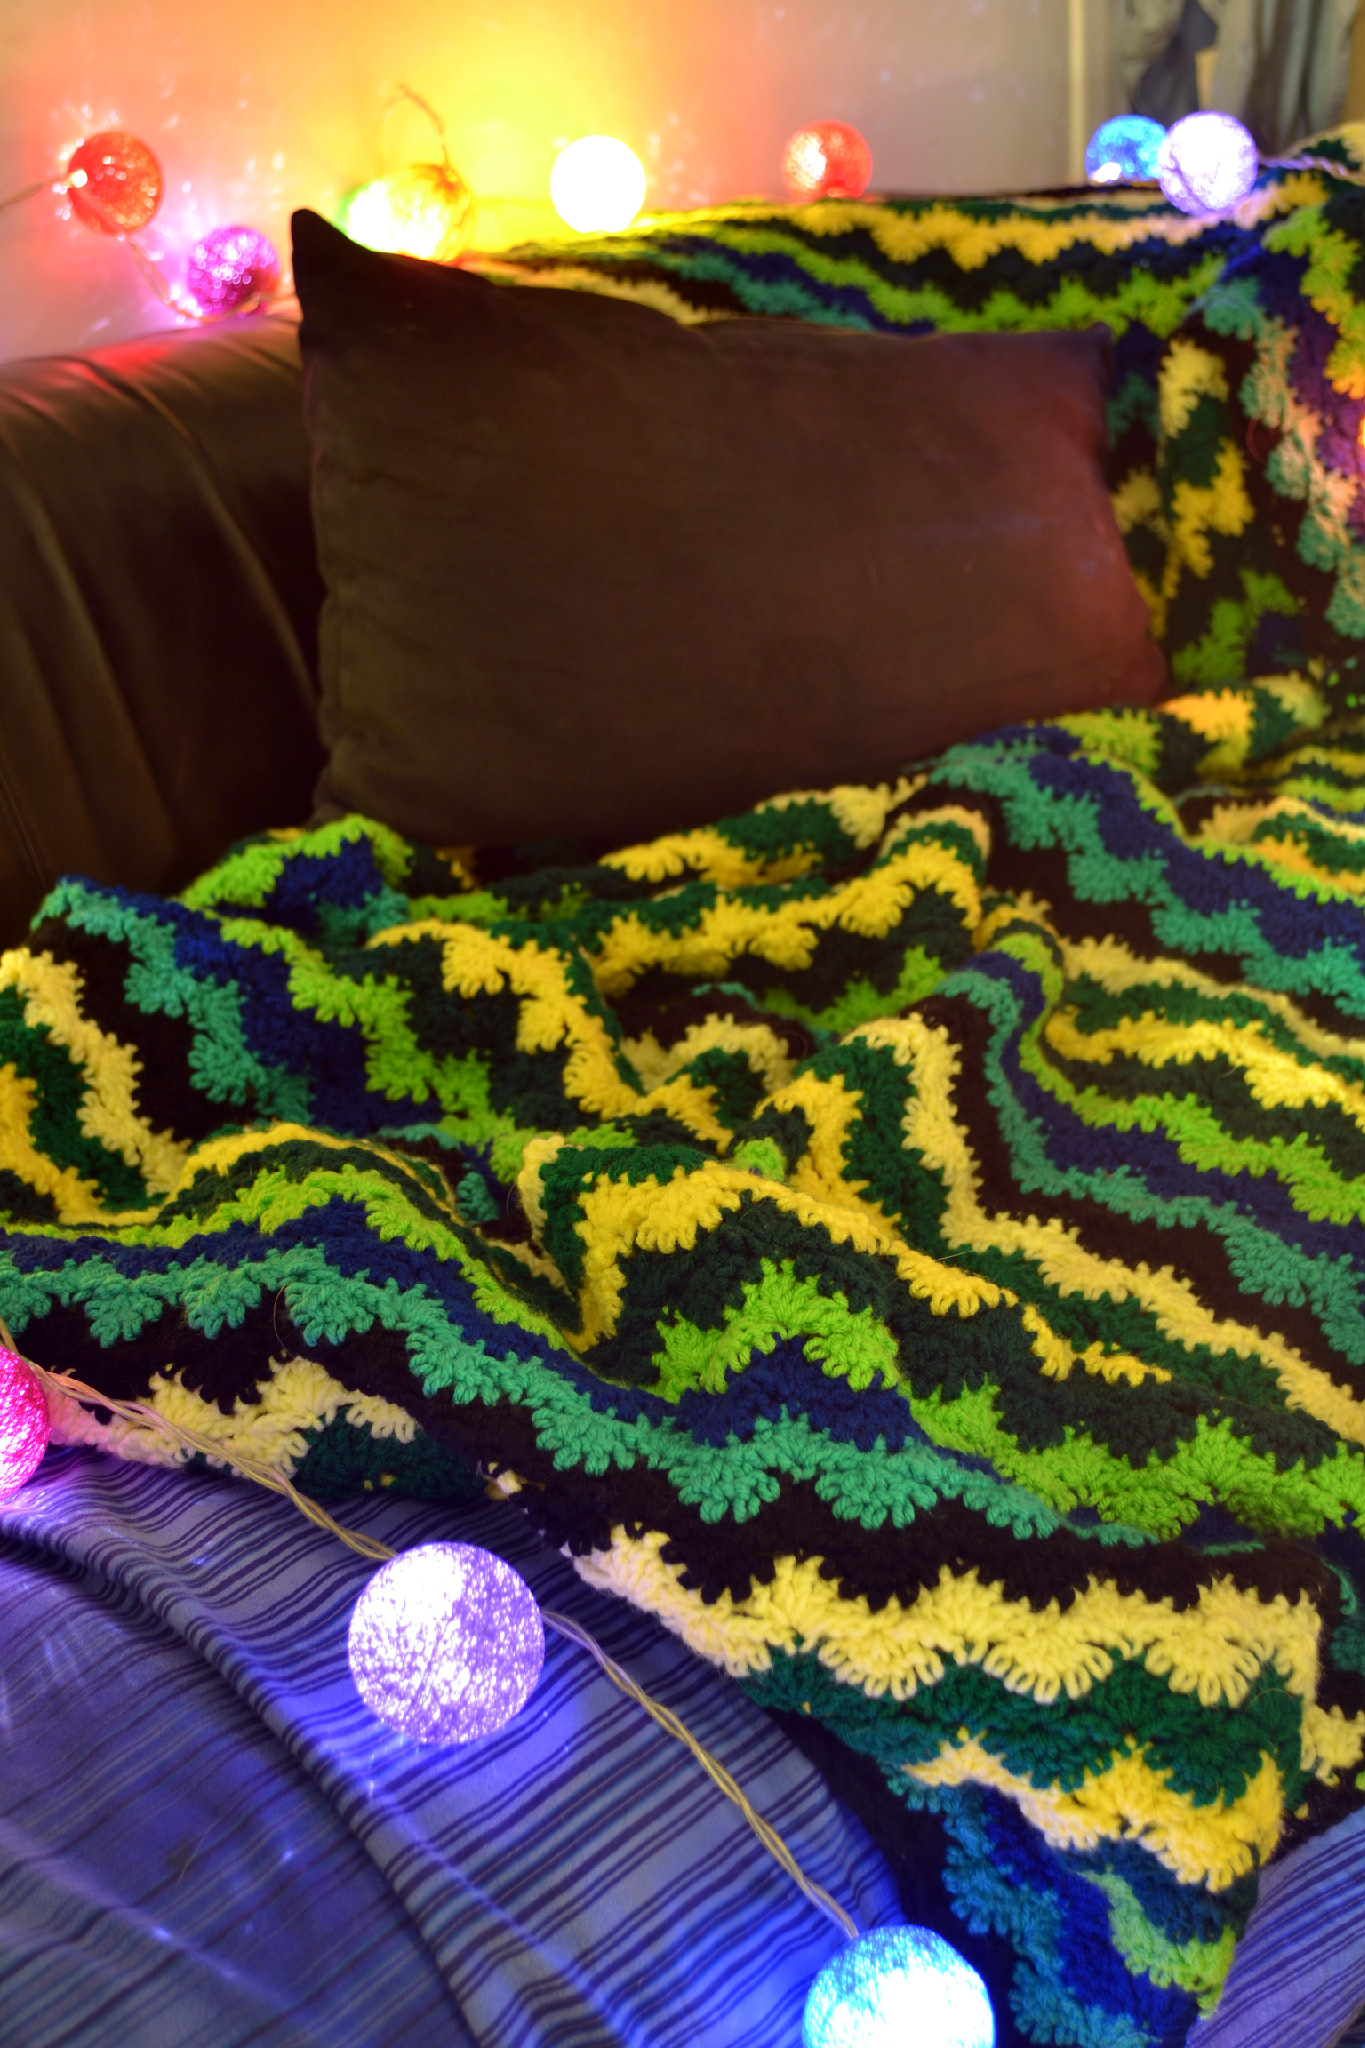 crochet blanket on sofa surrounded by colourful lights